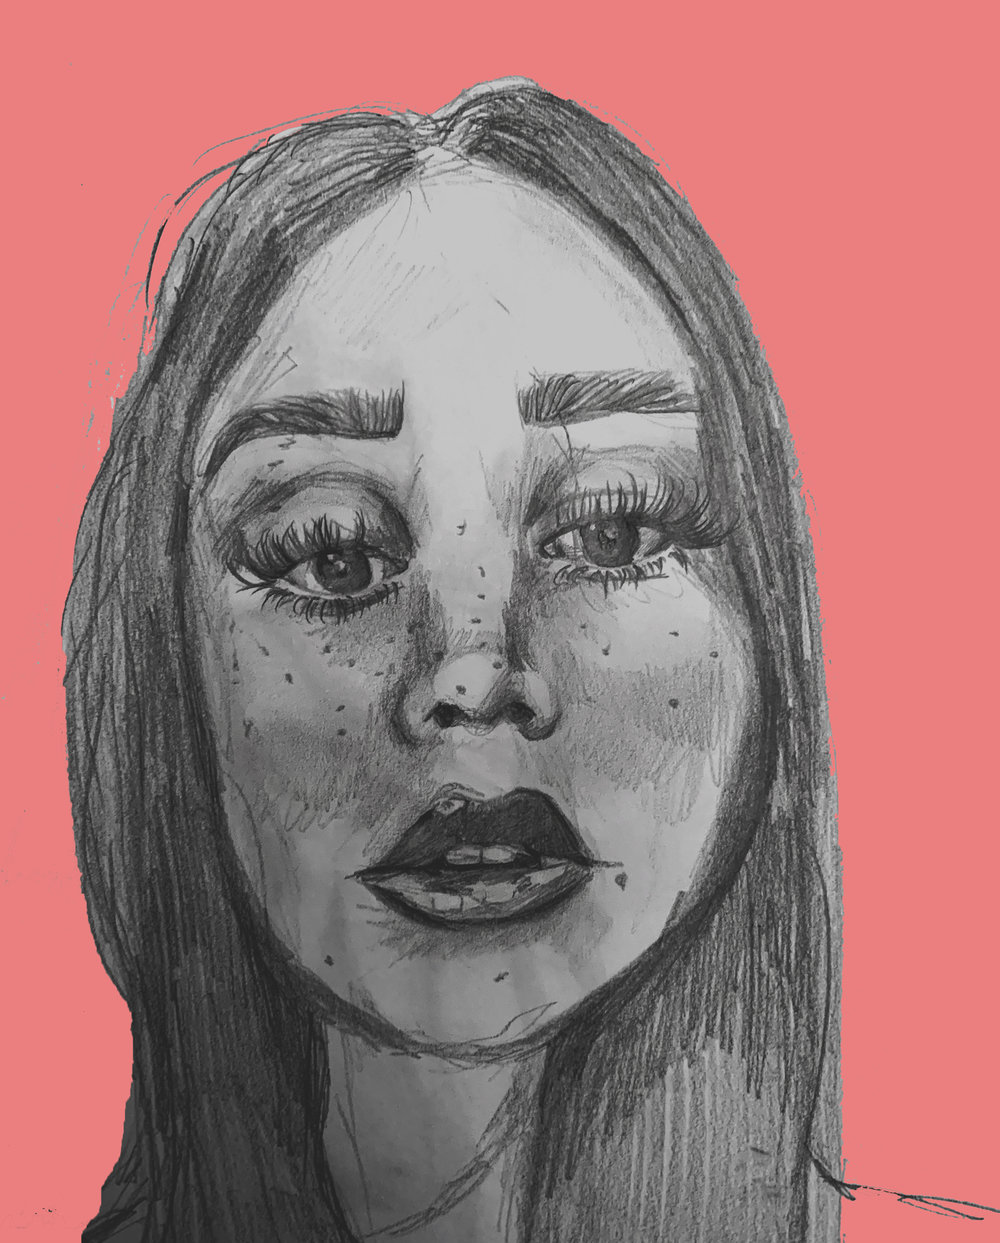 Illustration by Mallory Evans